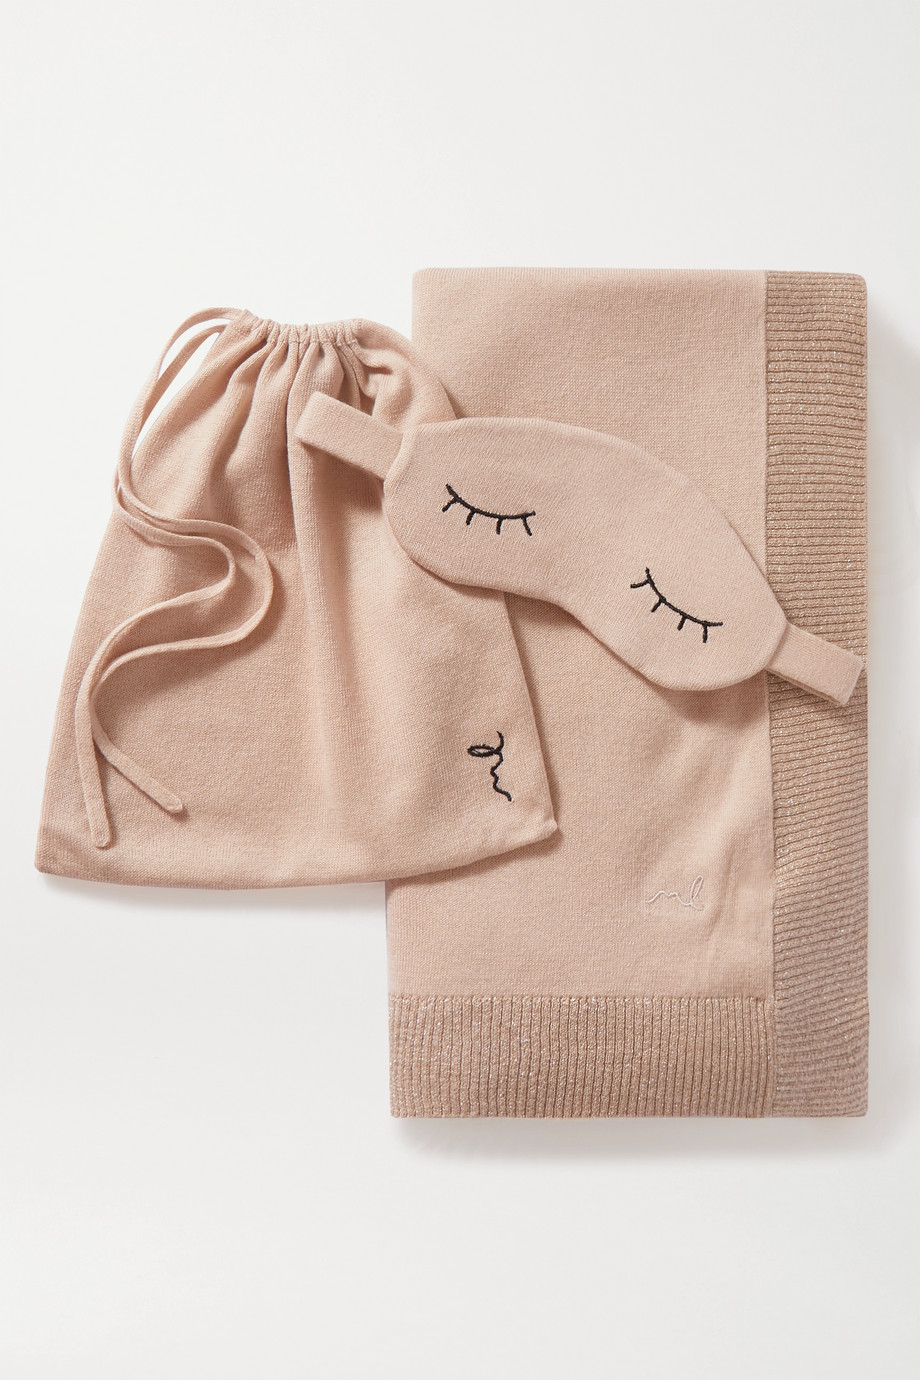 Morgan Lane Embroidered metallic cotton and cashmere-blend eye mask and blanket set